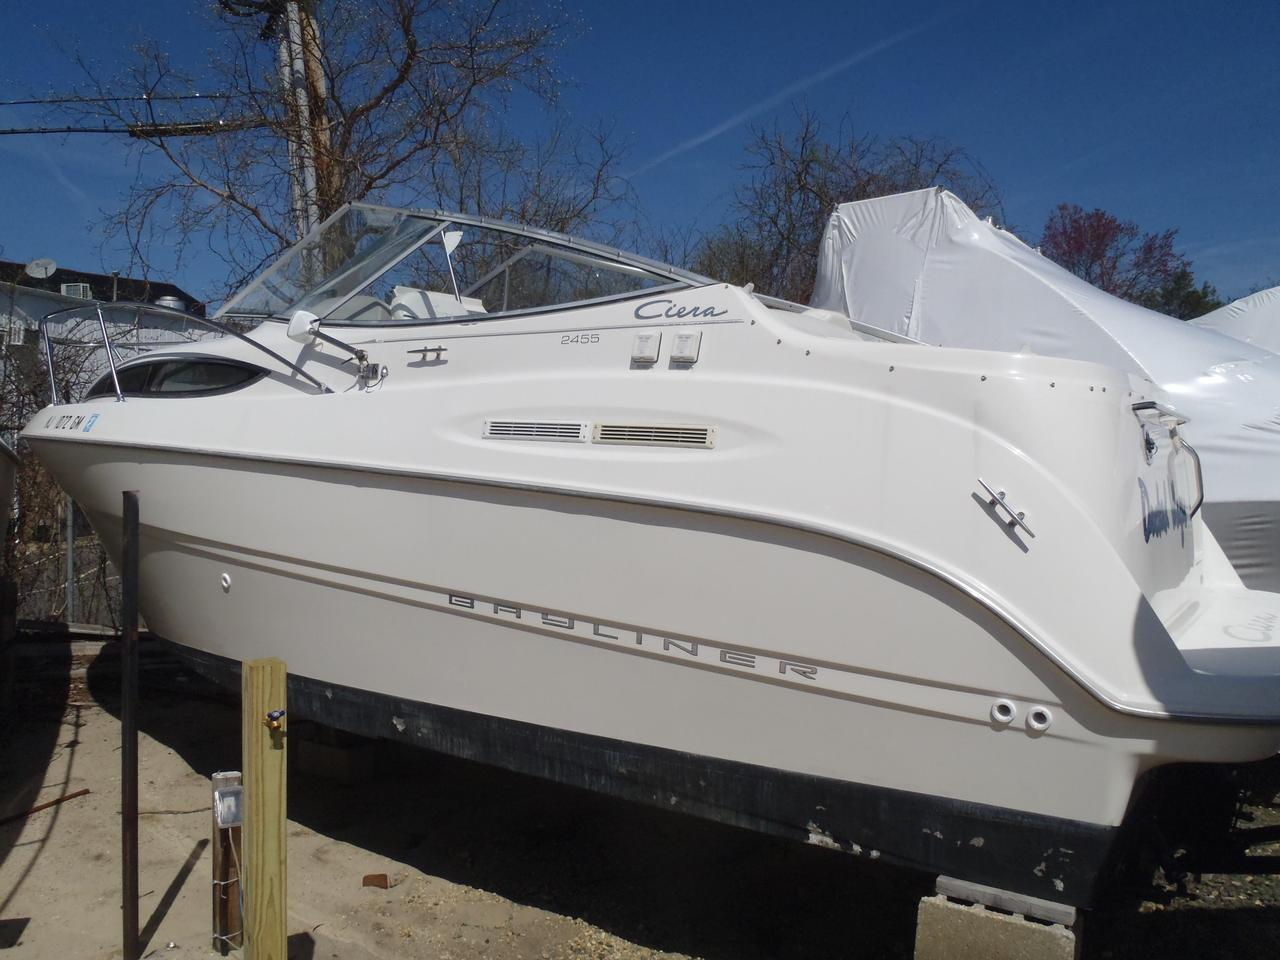 Used Bayliner 2455 Ciera Cruiser Boat For Sale